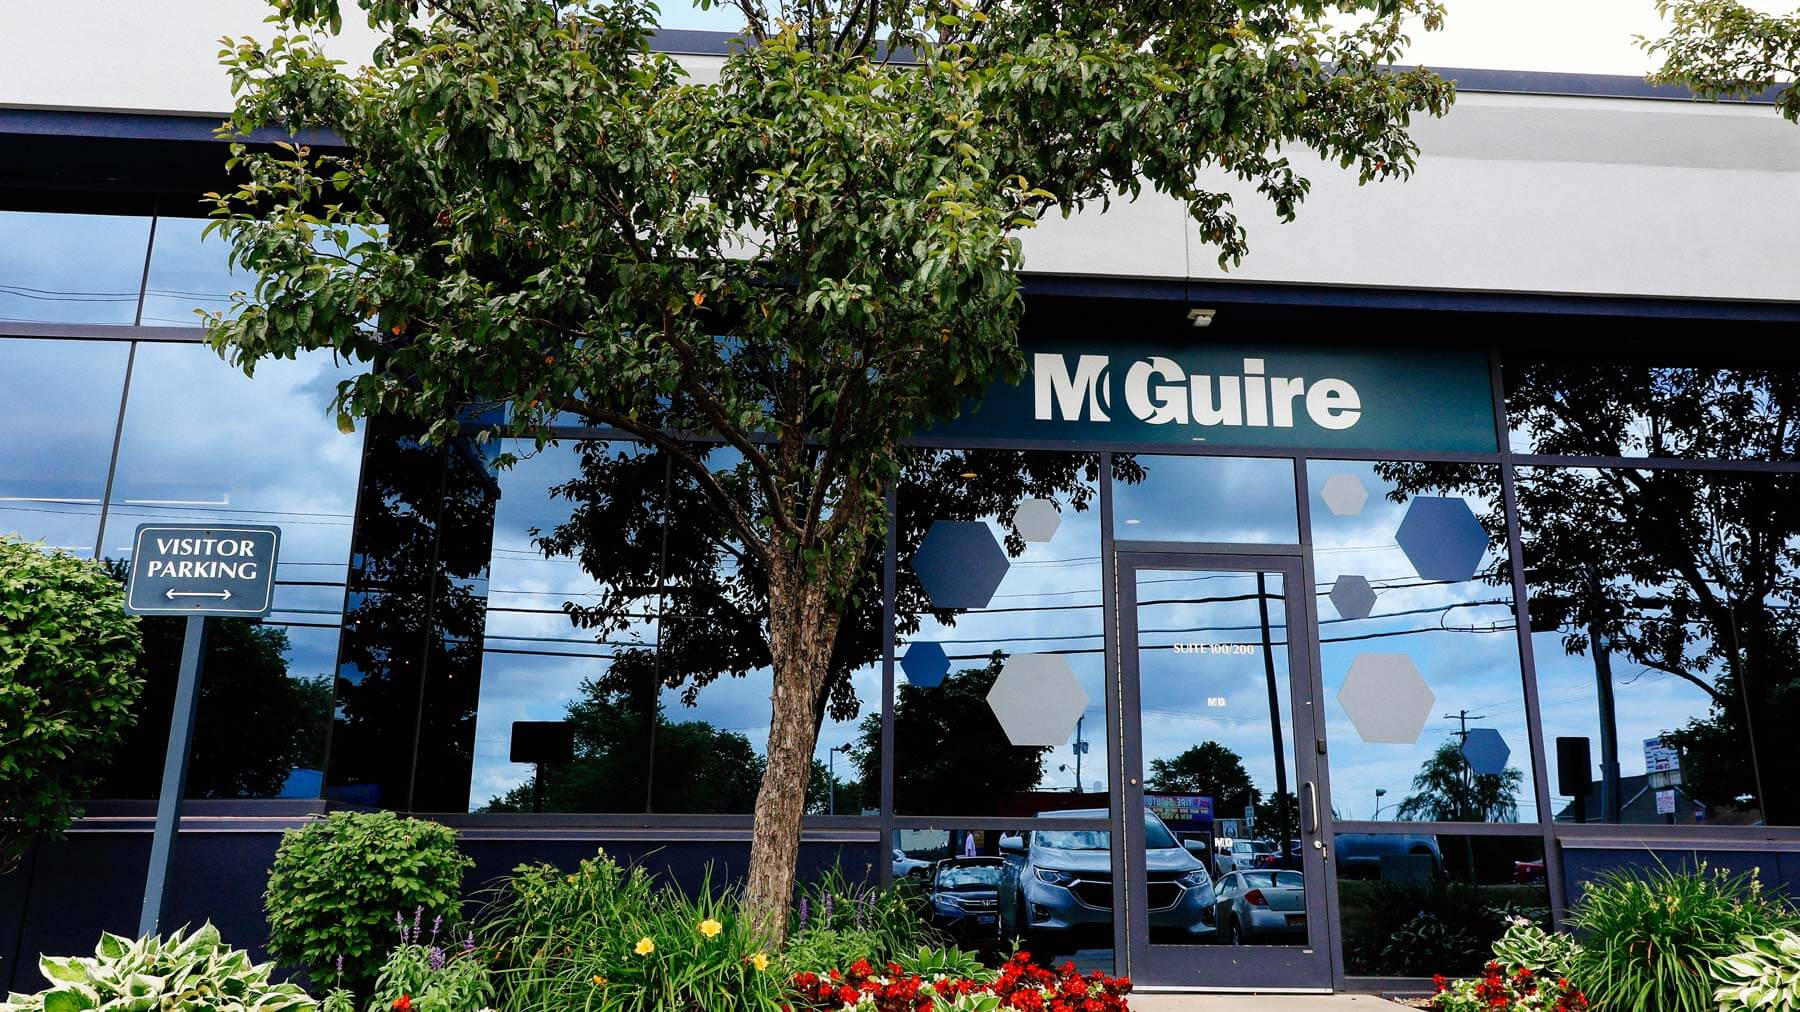 Mcguire-about-contact-header-image